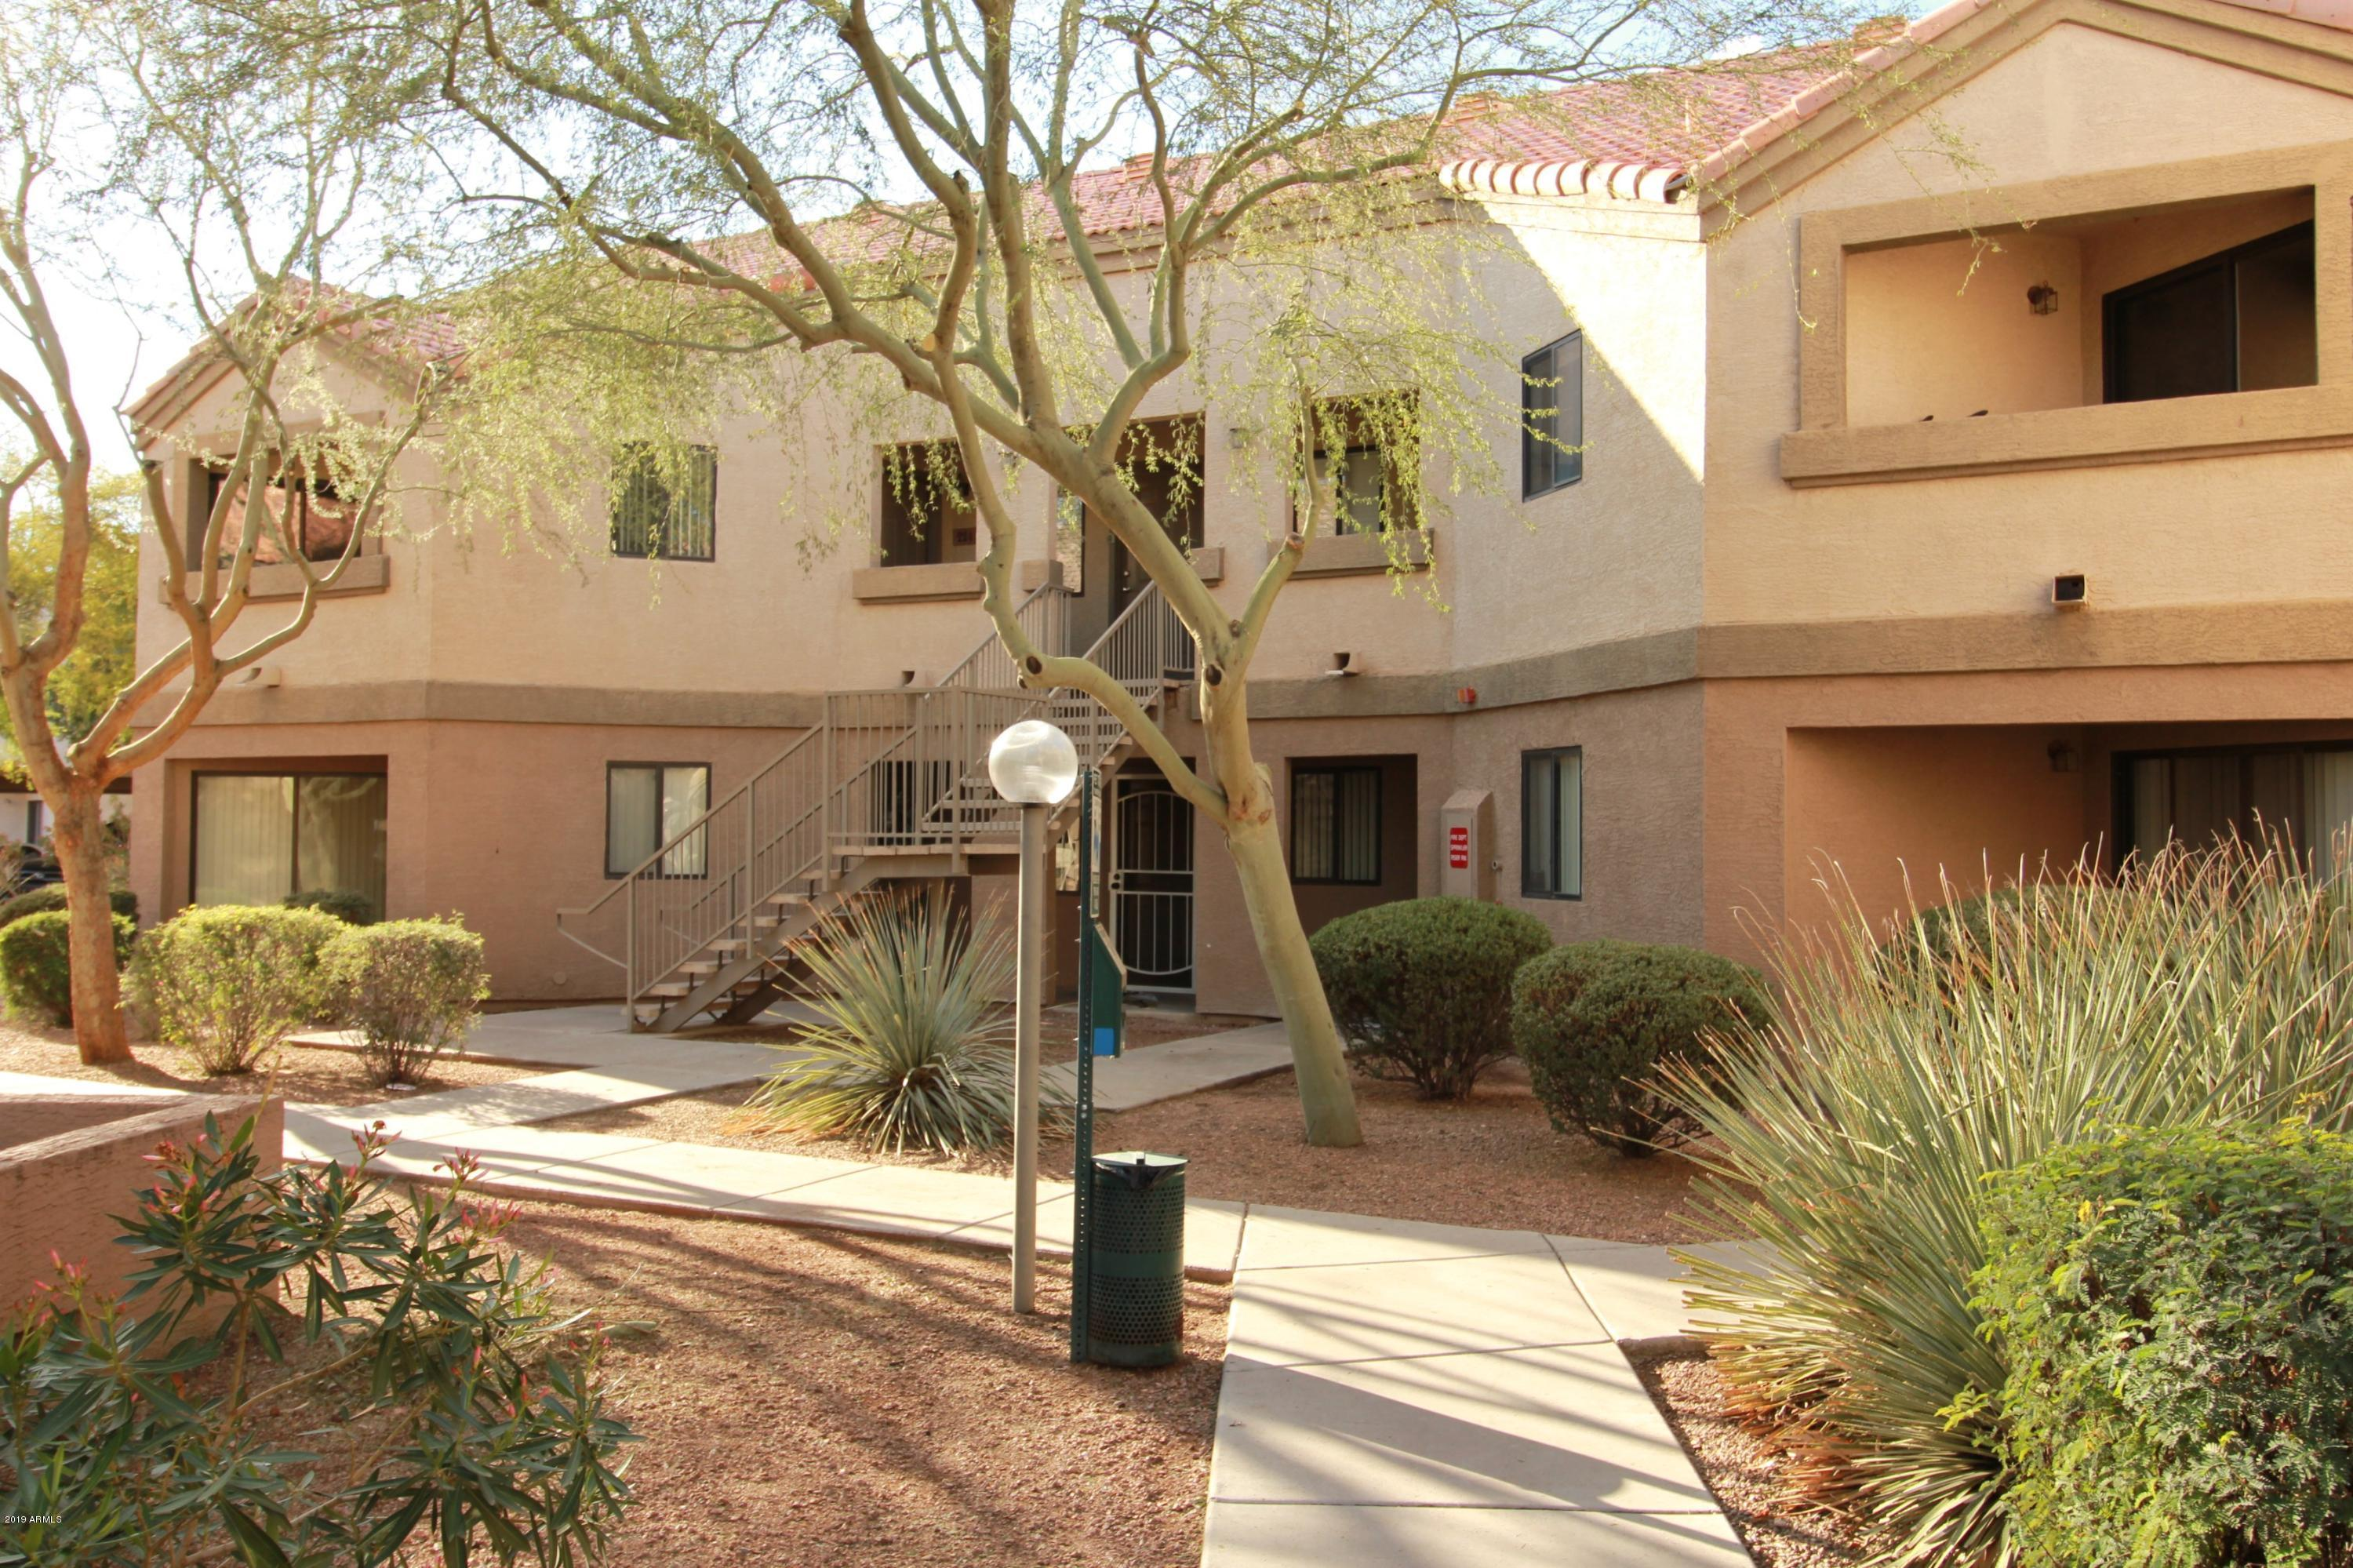 Photo of 1287 N ALMA SCHOOL Road #123, Chandler, AZ 85224